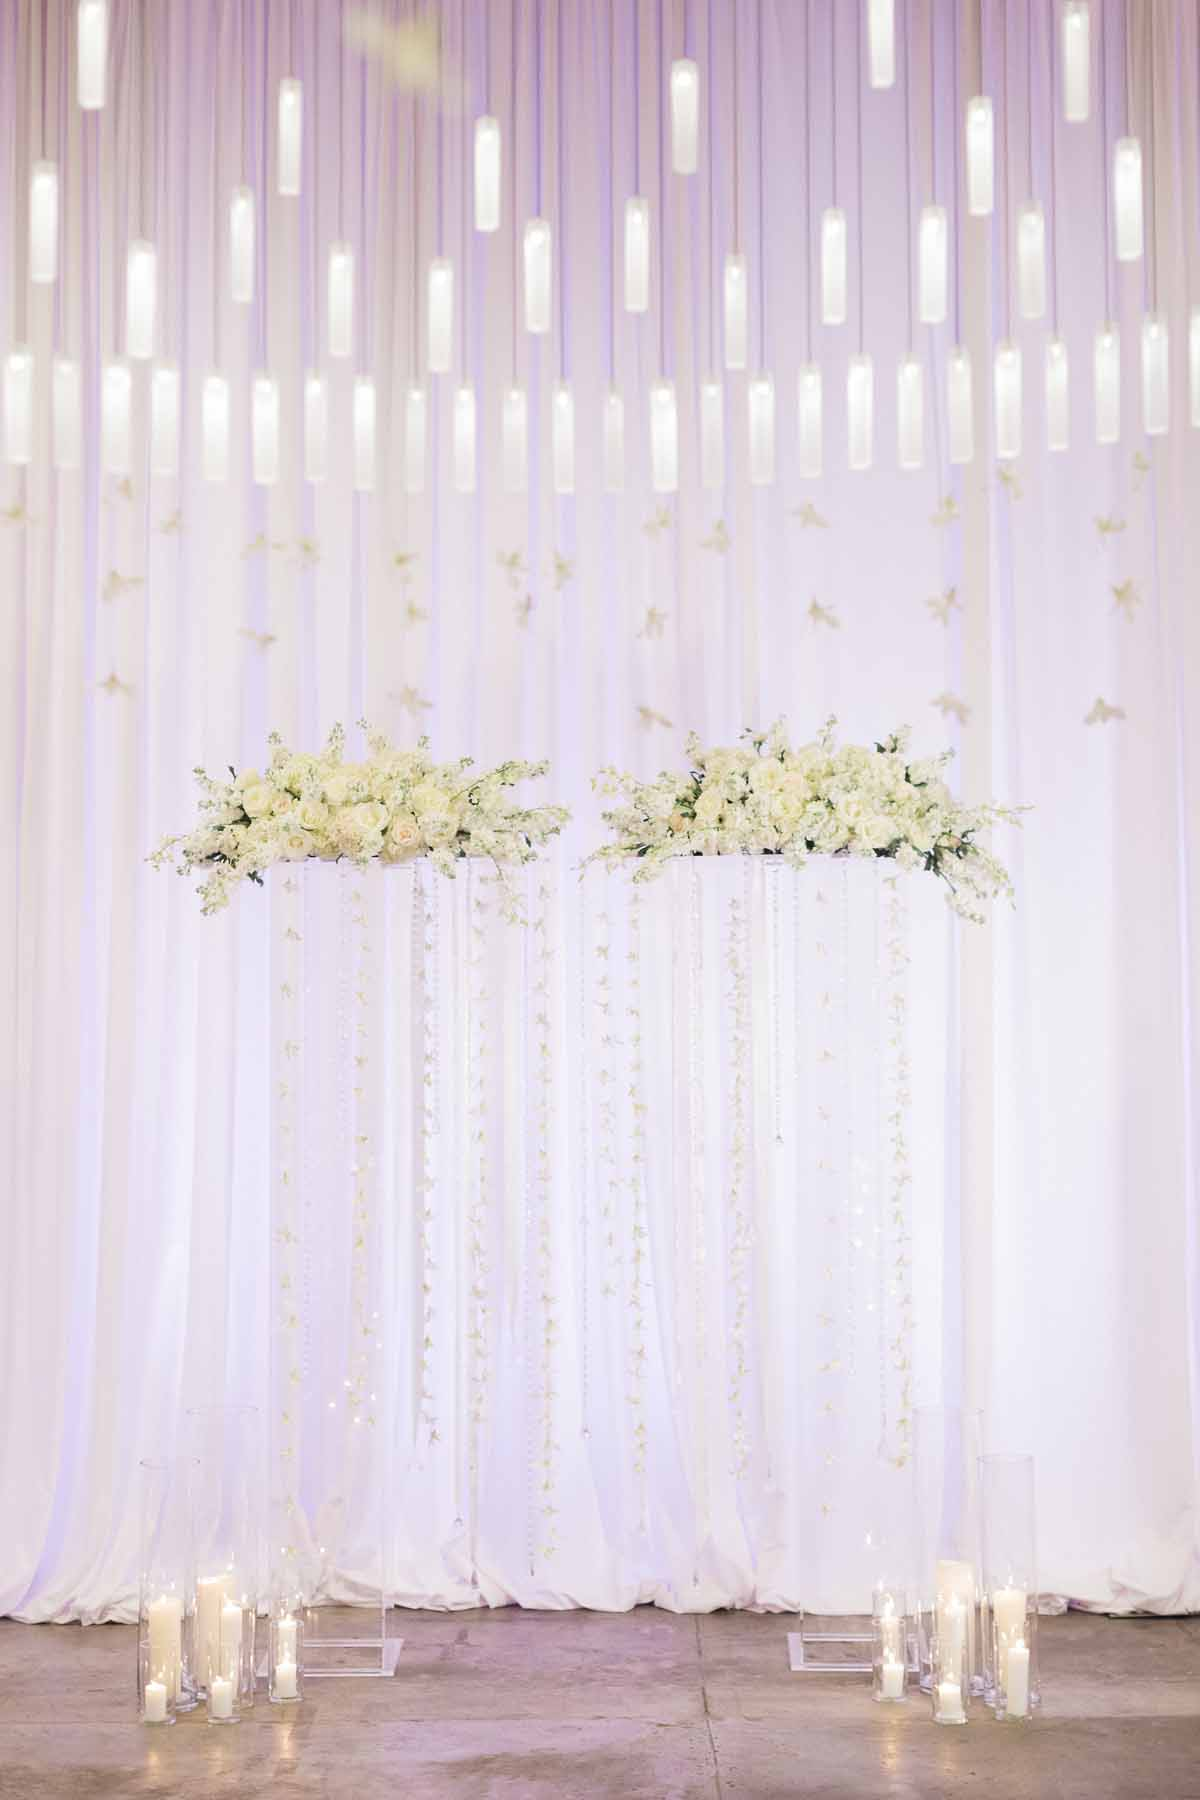 Ethereal wedding arch with clear lucite pillars, crystal strands, white flowers, and white draping - Canvas Event Space Wedding by Flora Nova Design